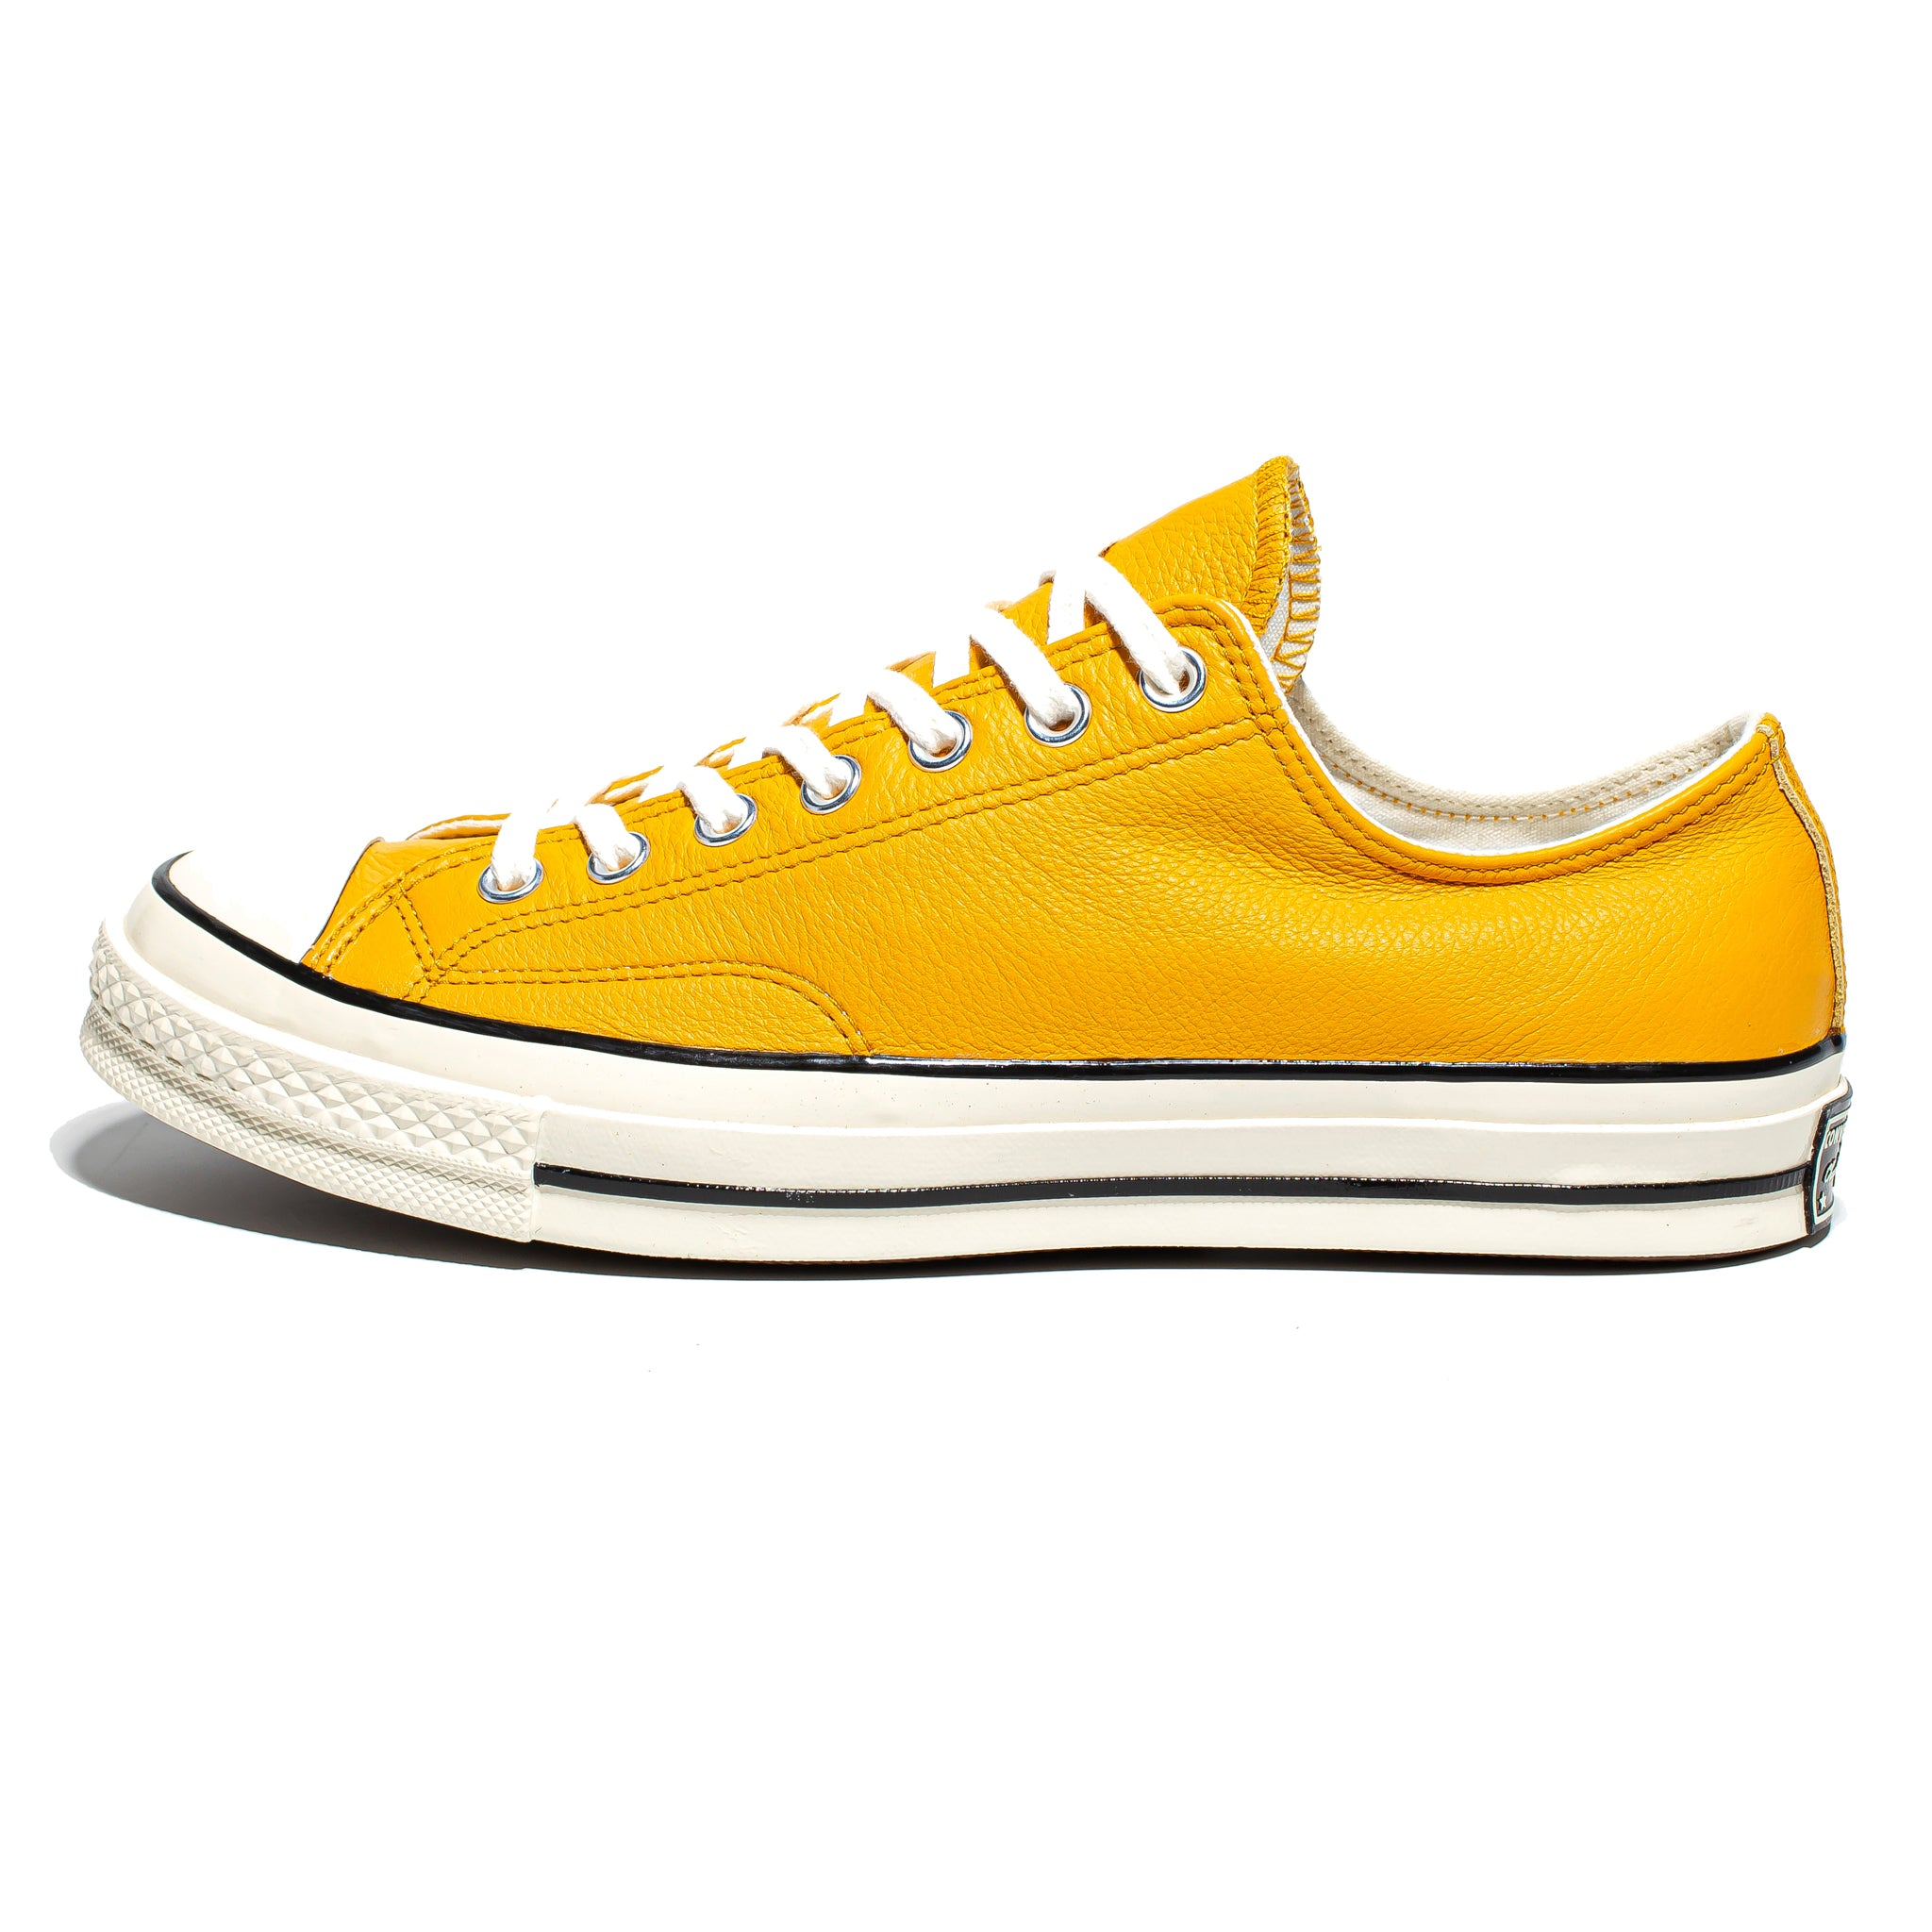 Converse Chuck 70 Ox Leather Sunflower Gold